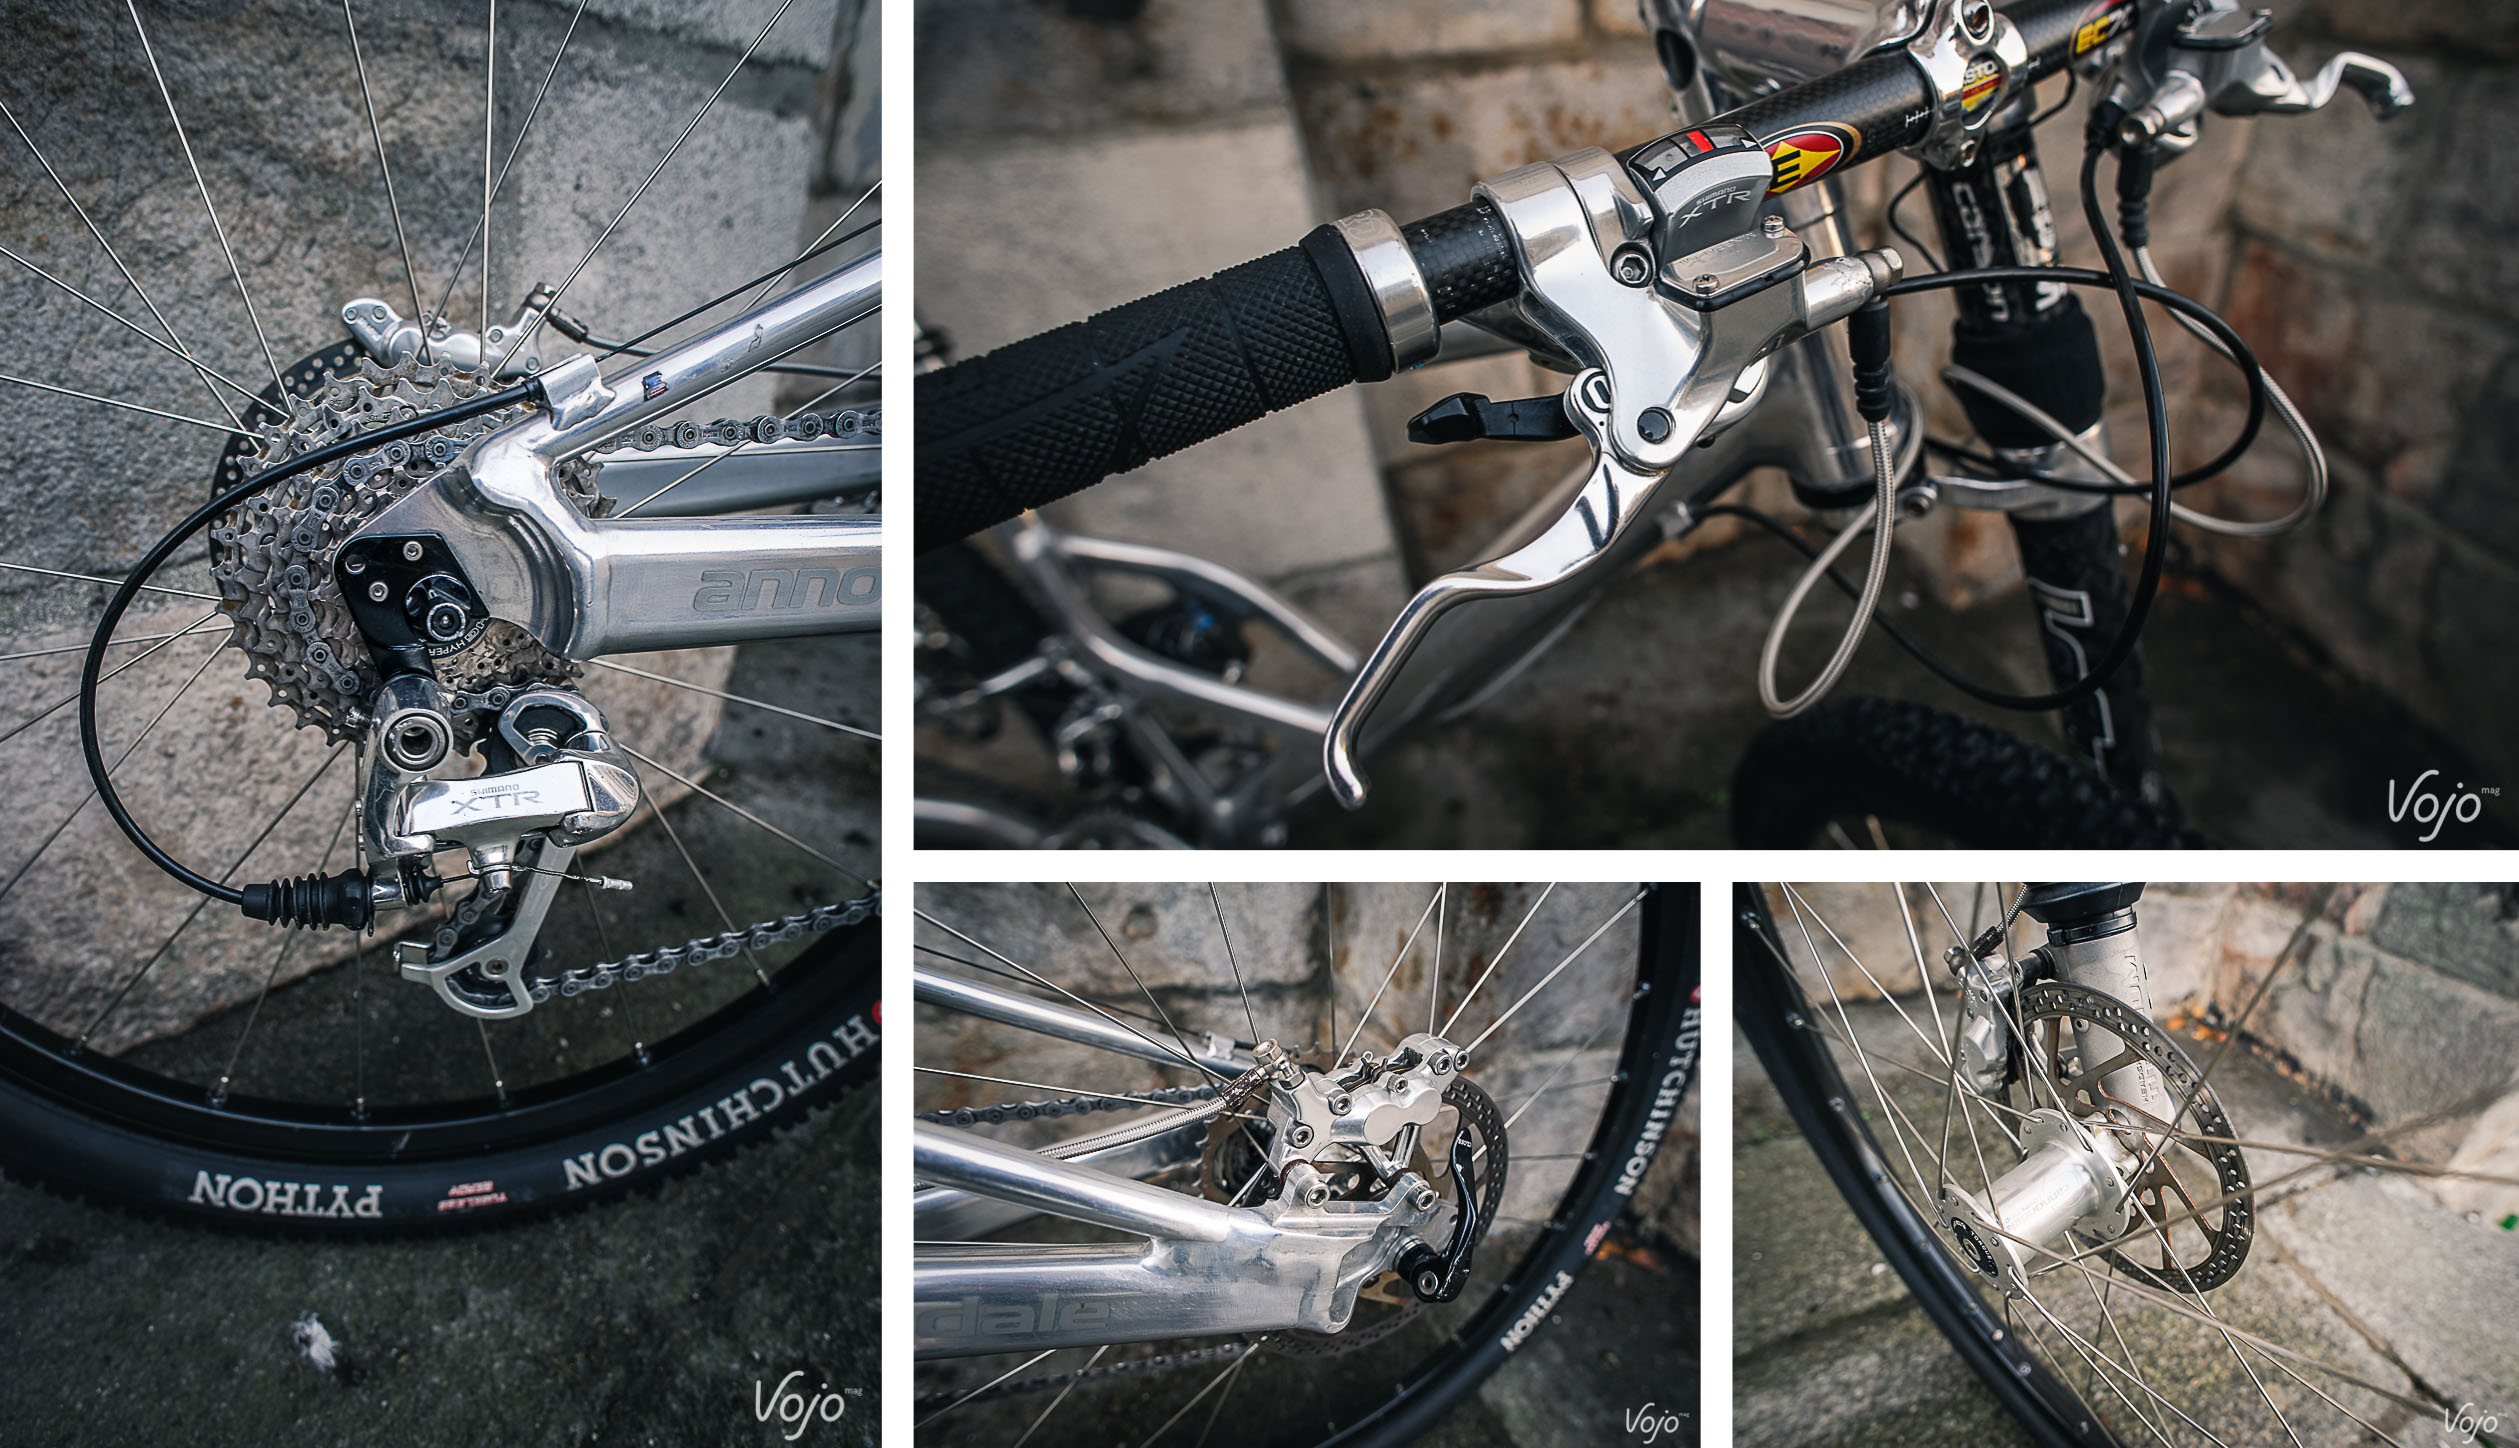 4-Cannondale_Jekyll_GoodBoy_Copyright_OBeart_VojoMag-1